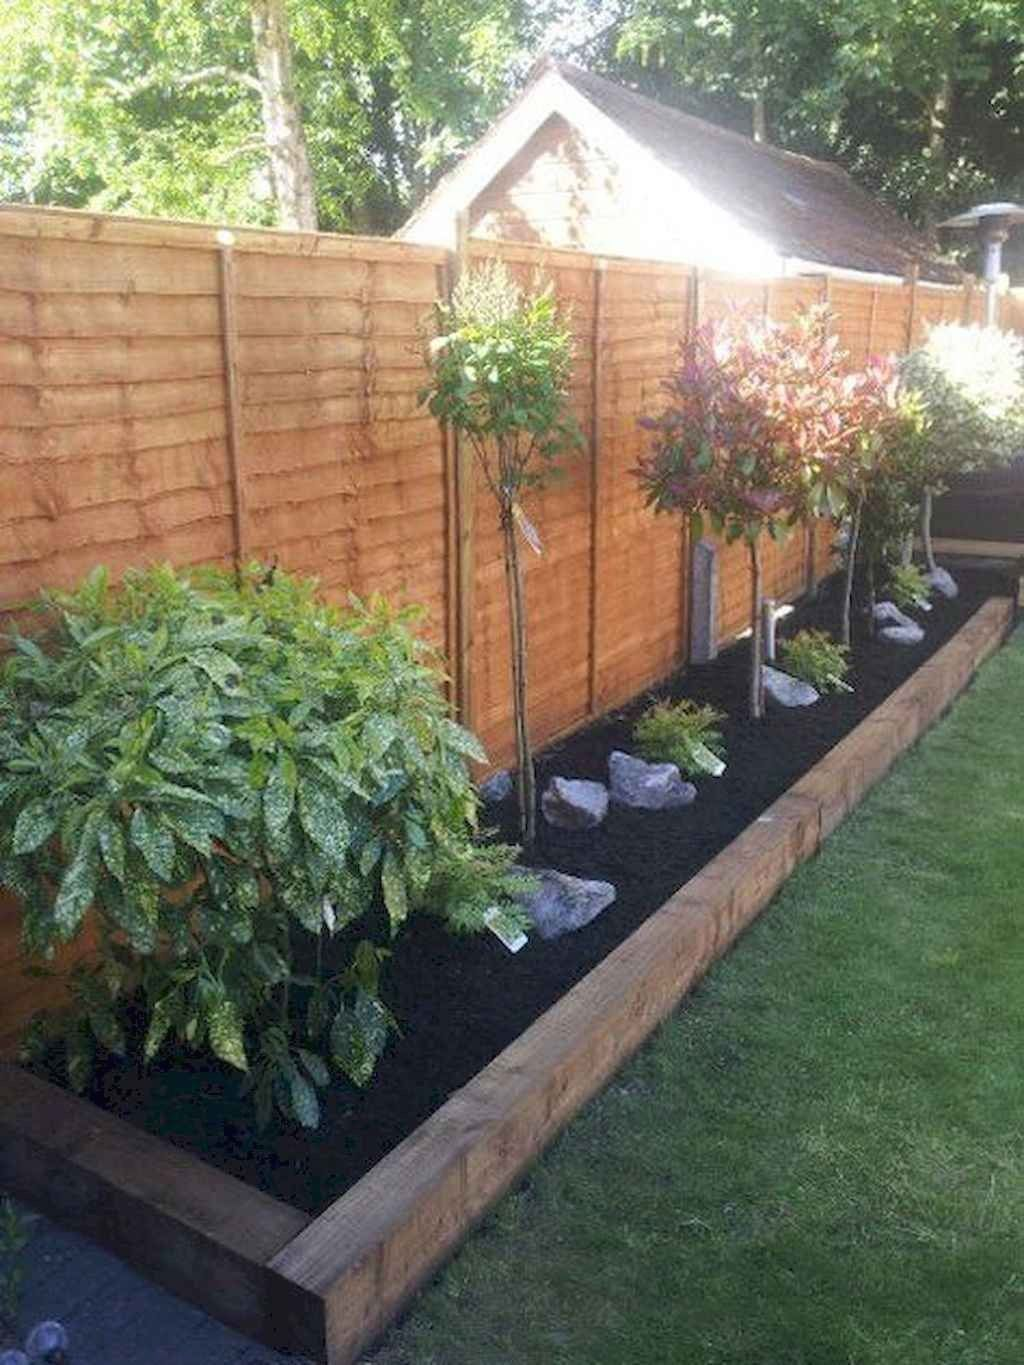 Best Of Simple Garden Ideas Inspiration Yards 80 Easy And Cheap Landscaping Ideas For Yo Cheap Landscaping Ideas Backyard Garden Design Vegetable Garden Design Simple garden ideas for small backyard